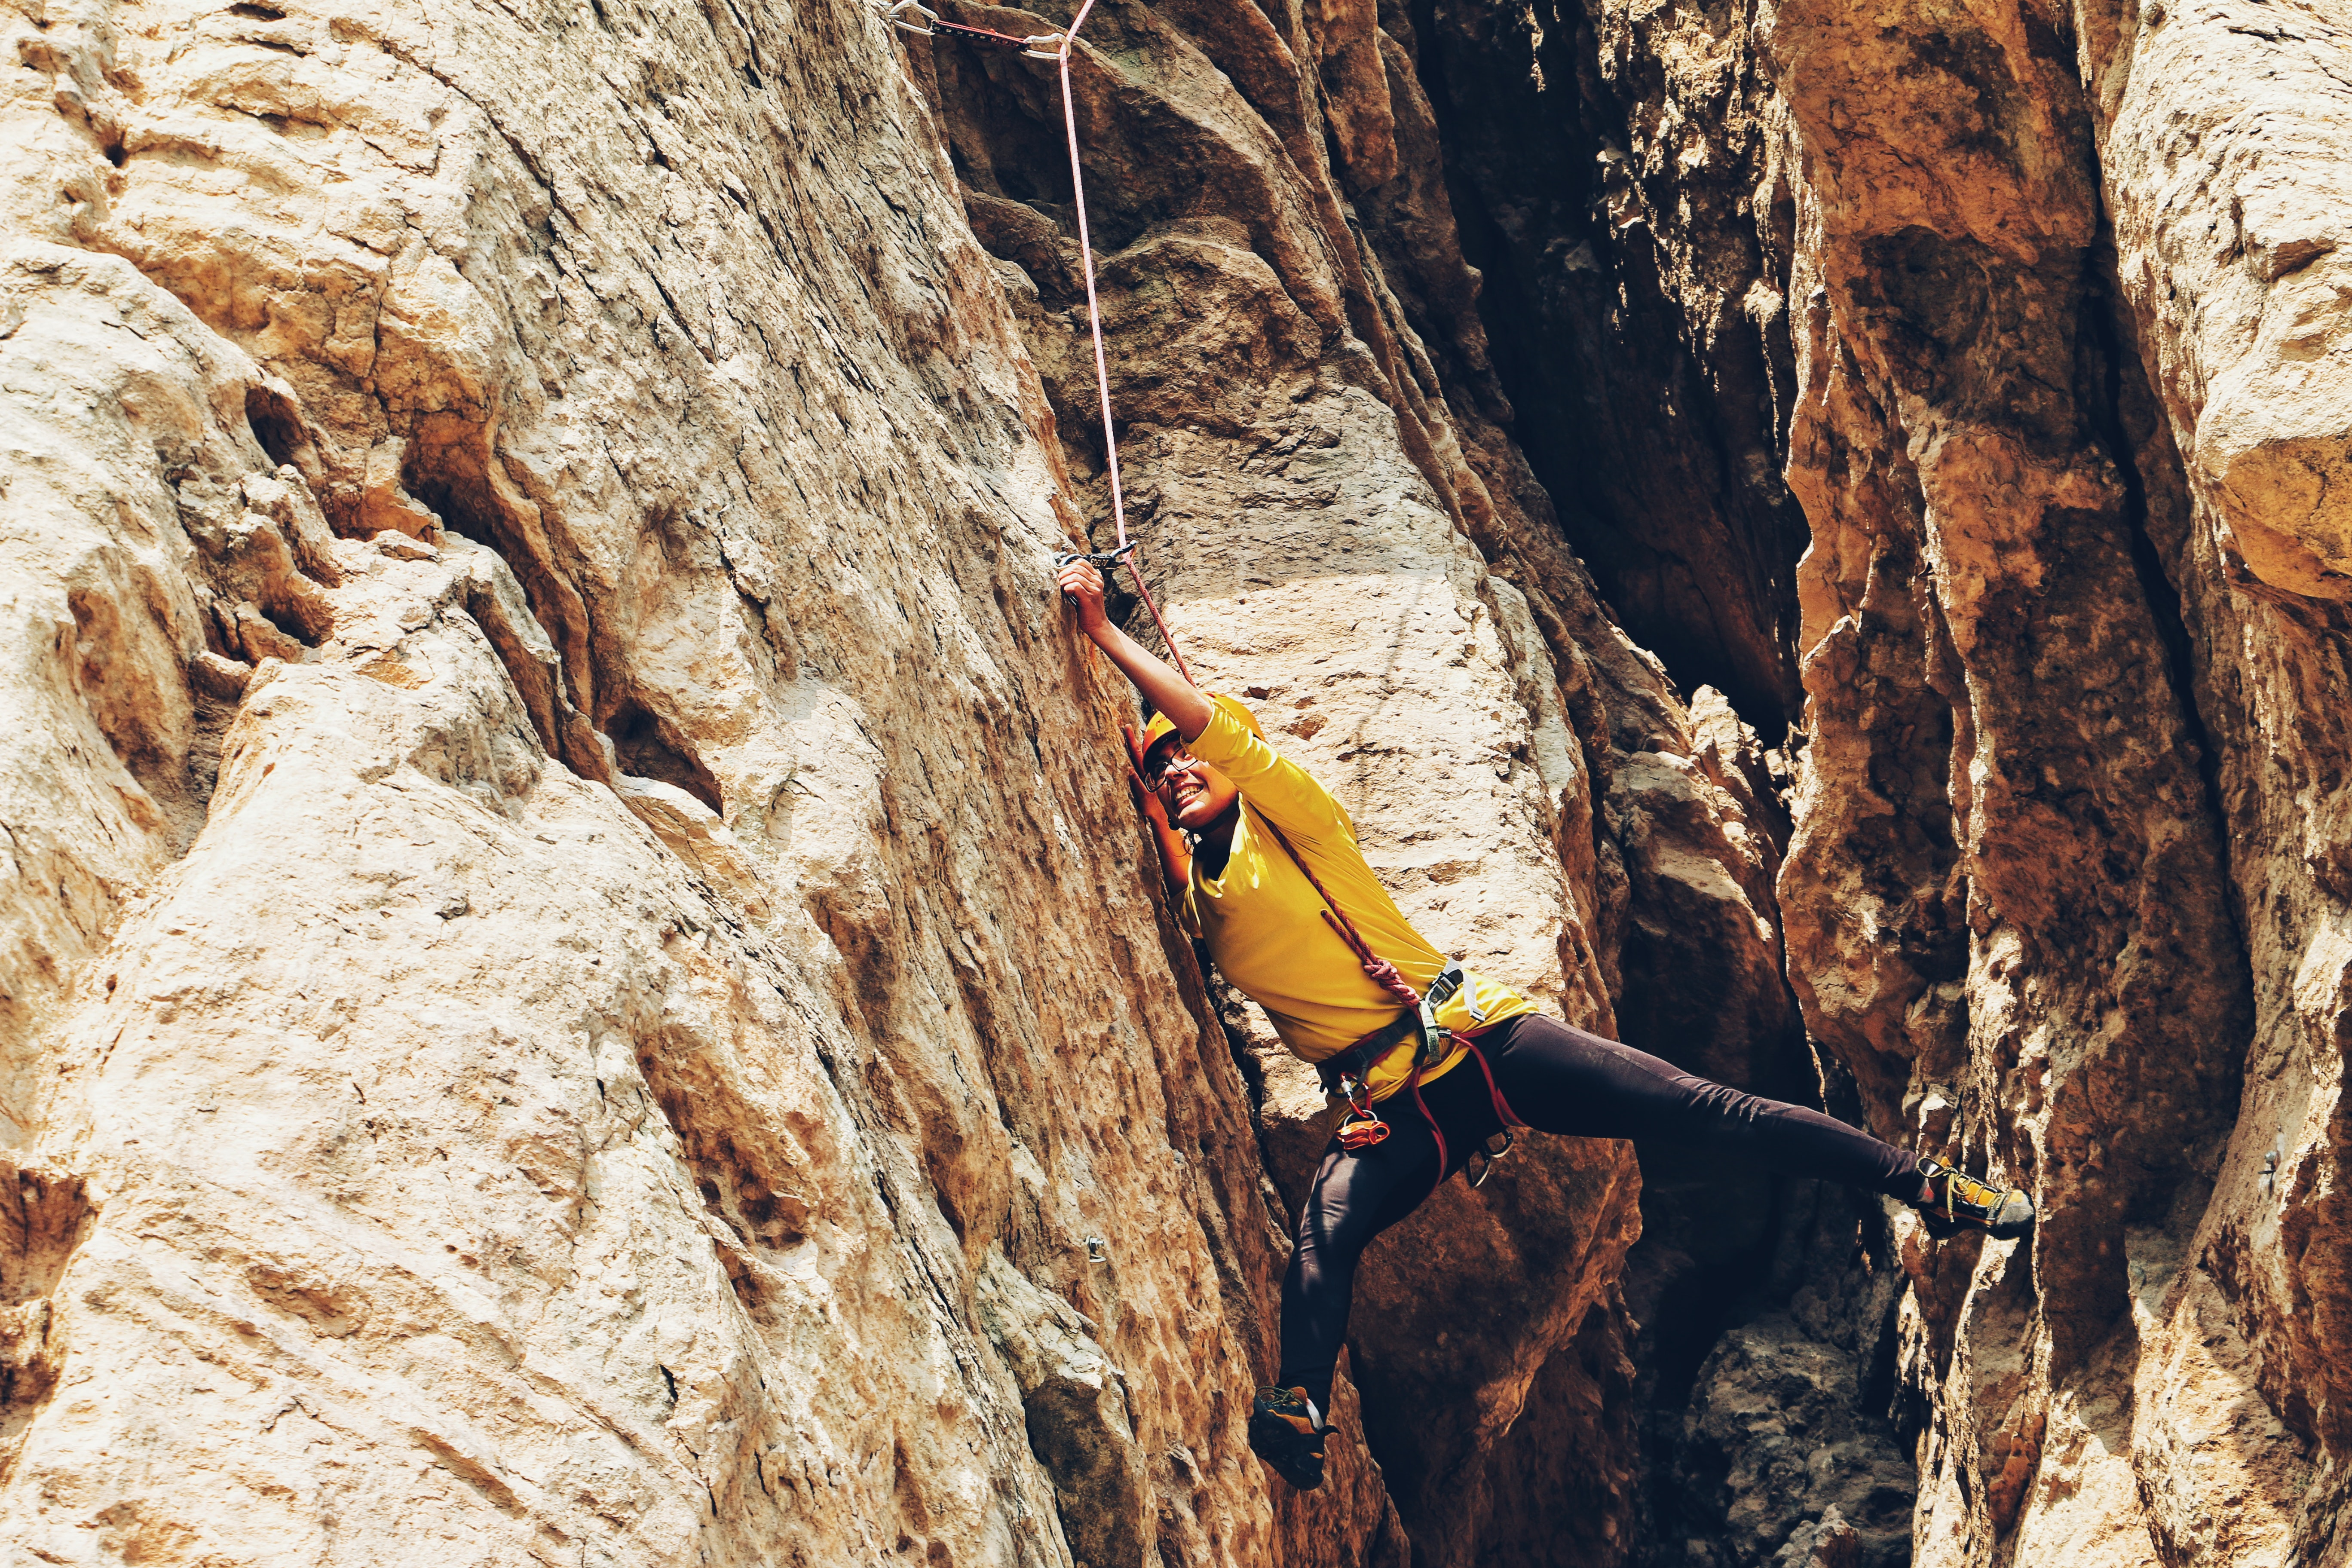 person climbing on the rock